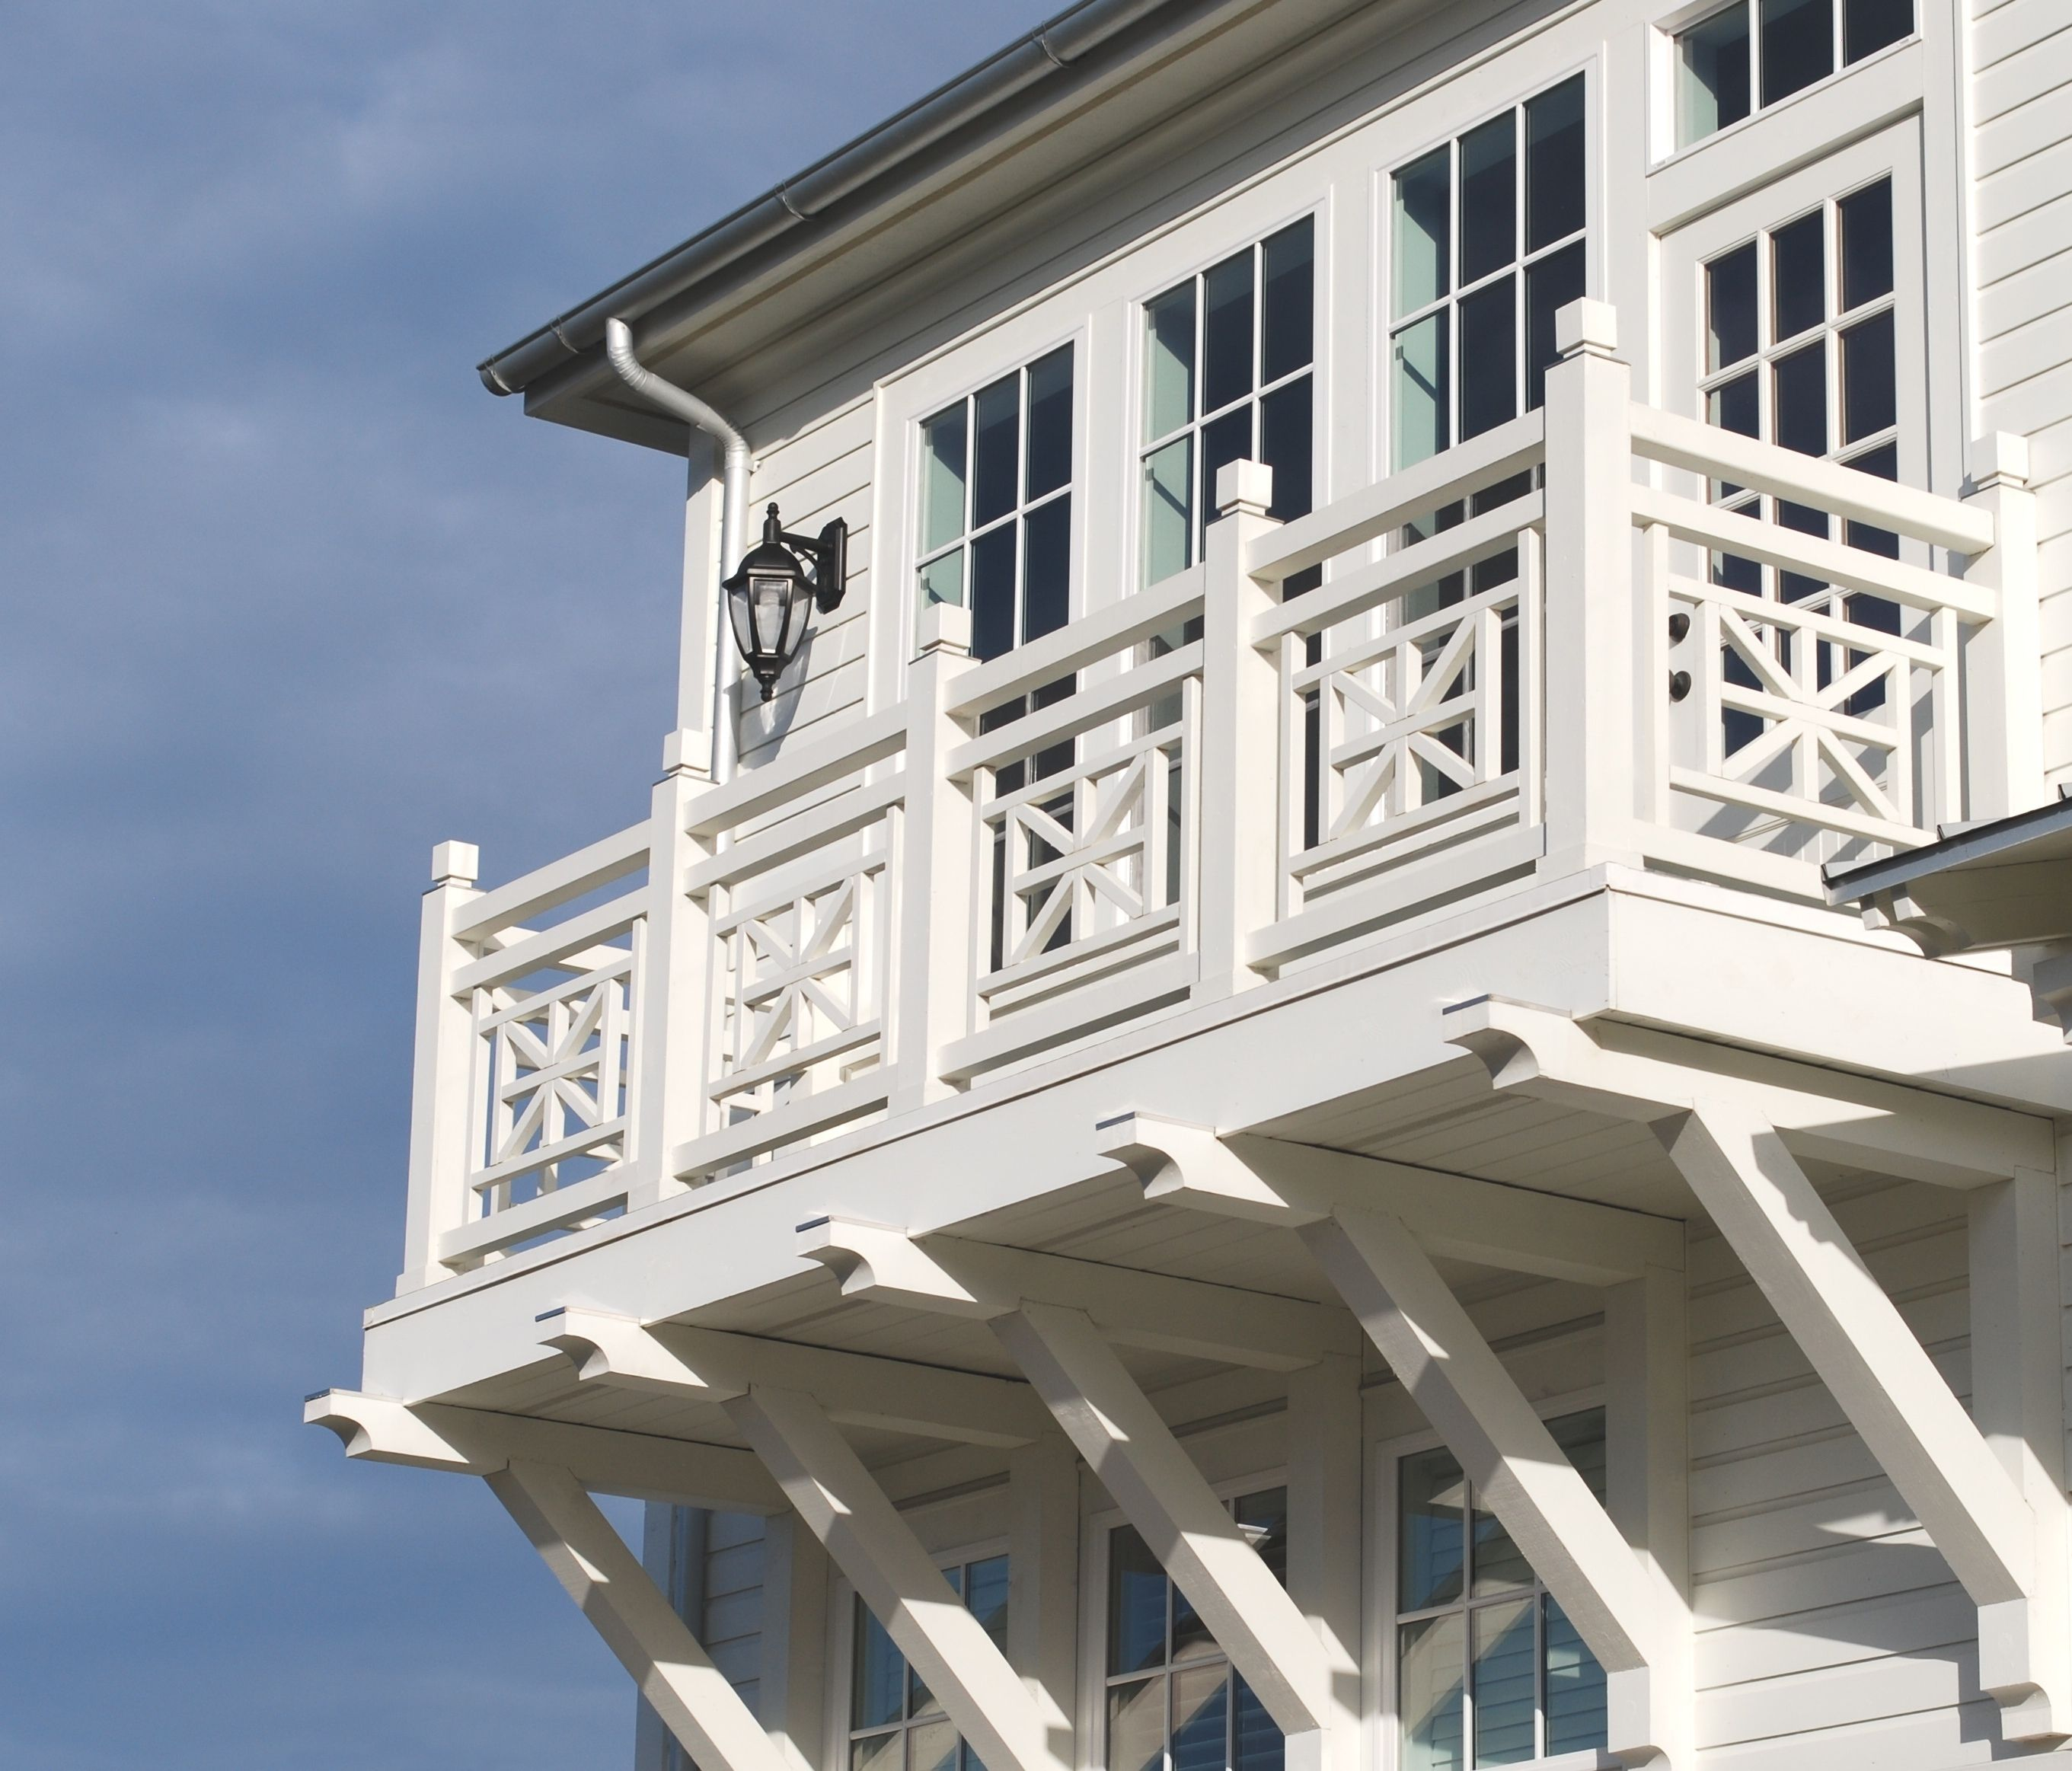 Beach House Decks: Balconies; Decks; Porches; Railings; Beach Houses; Wood